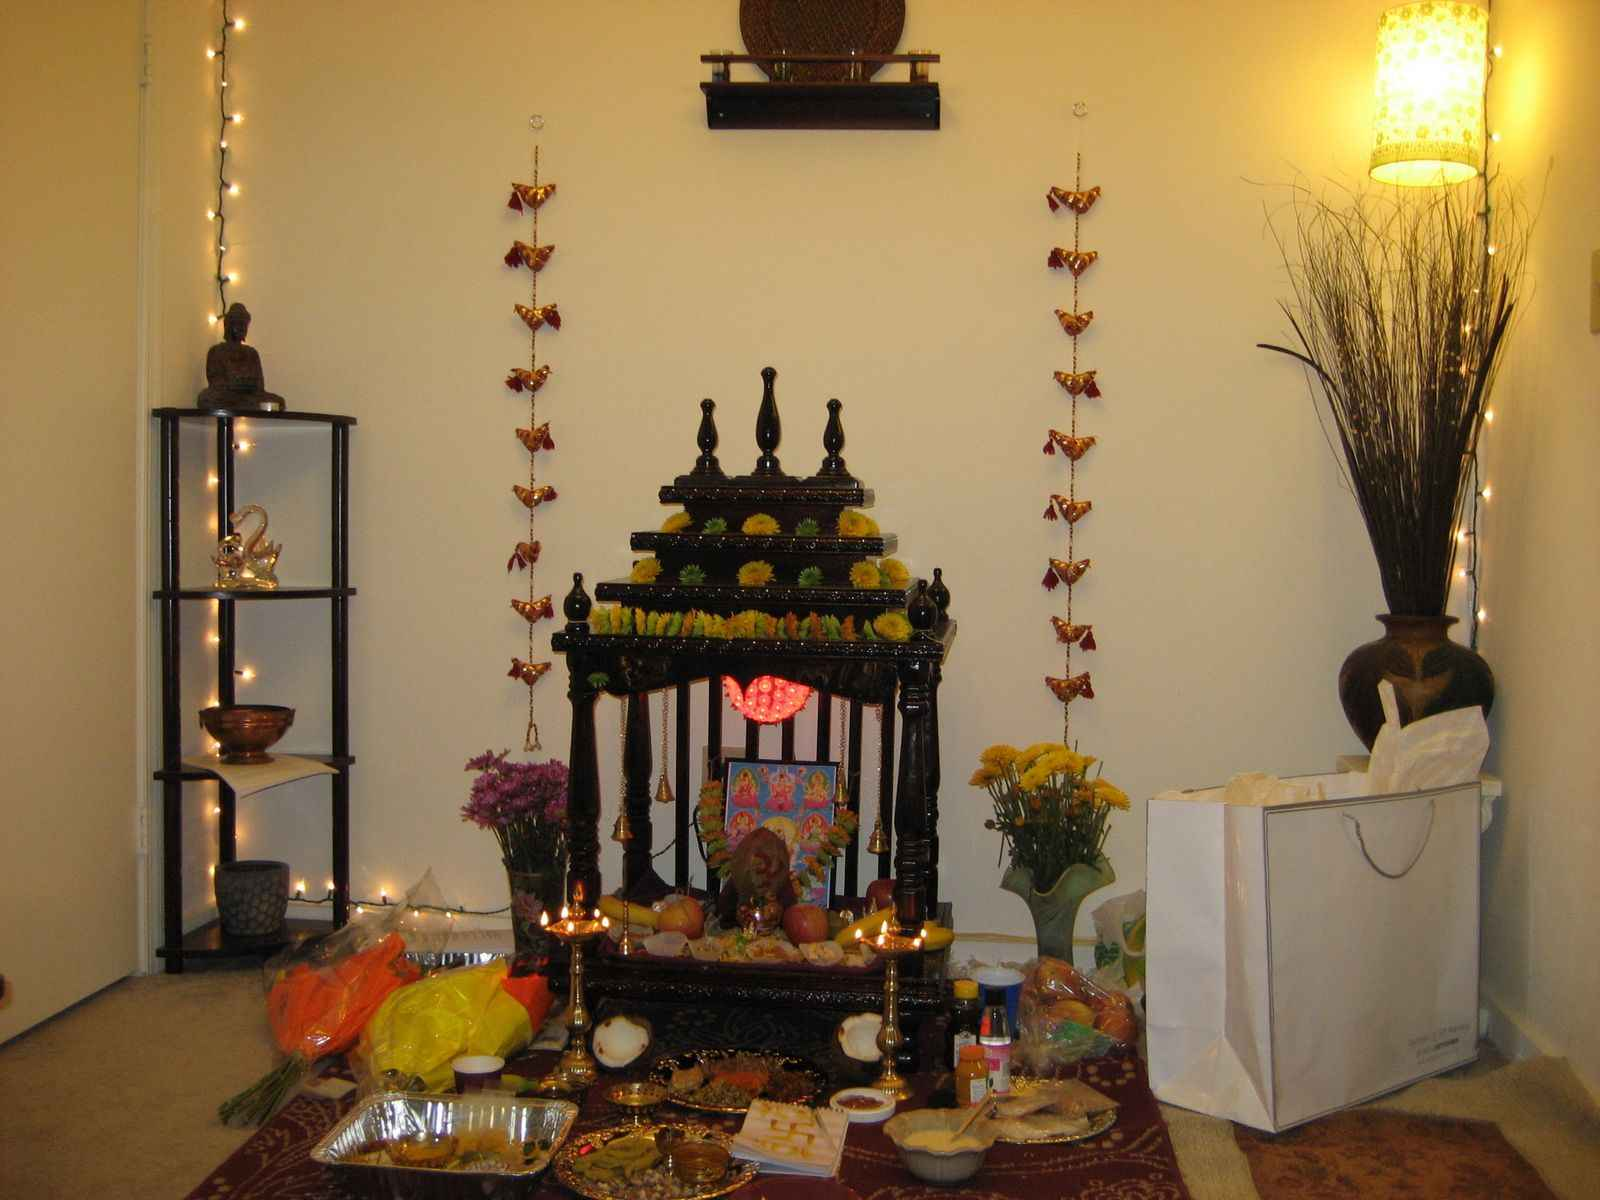 Kalash decoration ideas joy studio design gallery best design Home decorations for diwali